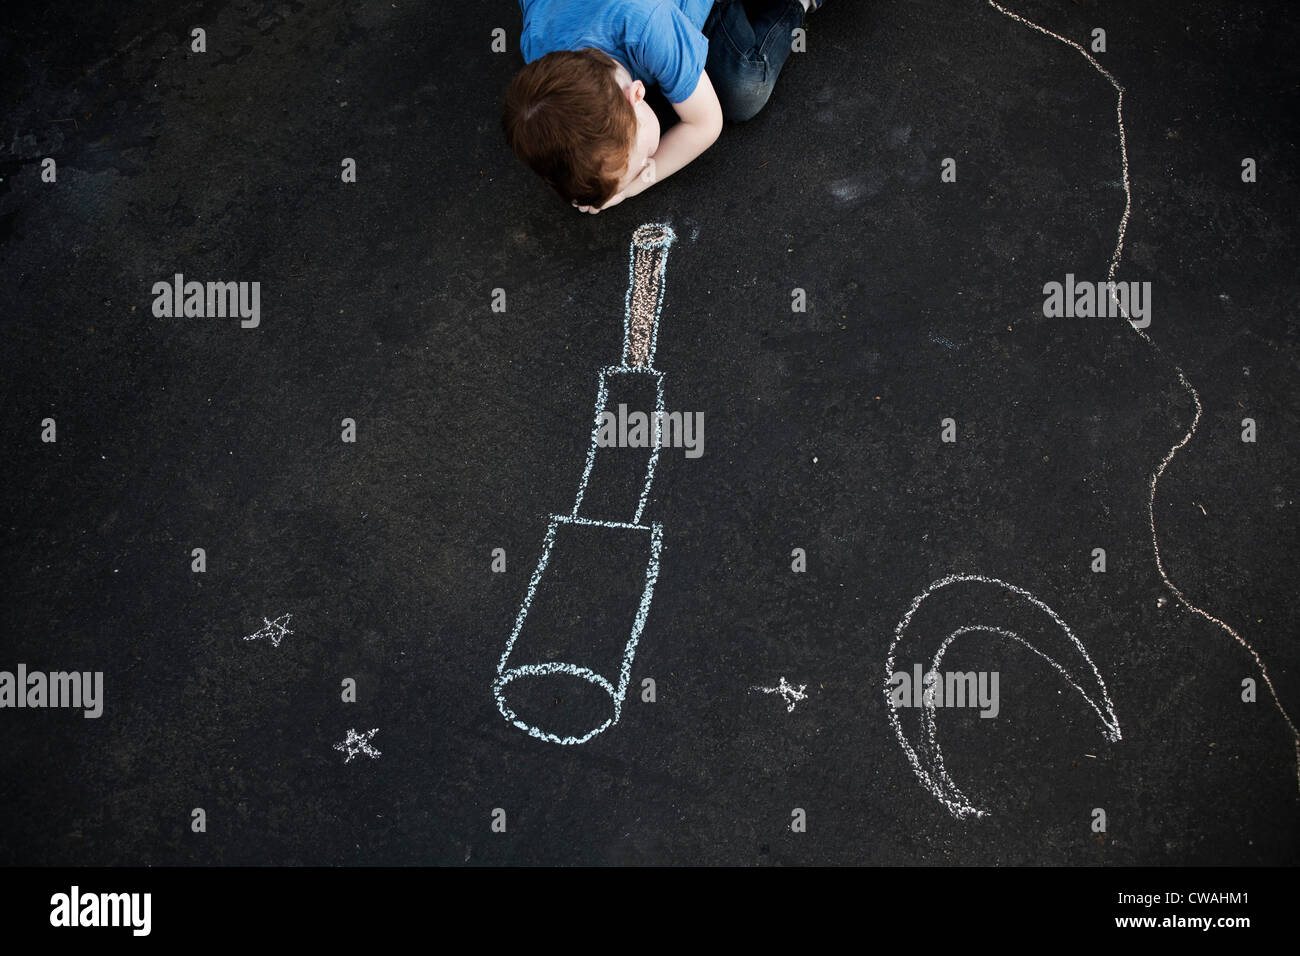 Boy on floor looking at chalk drawing - Stock Image